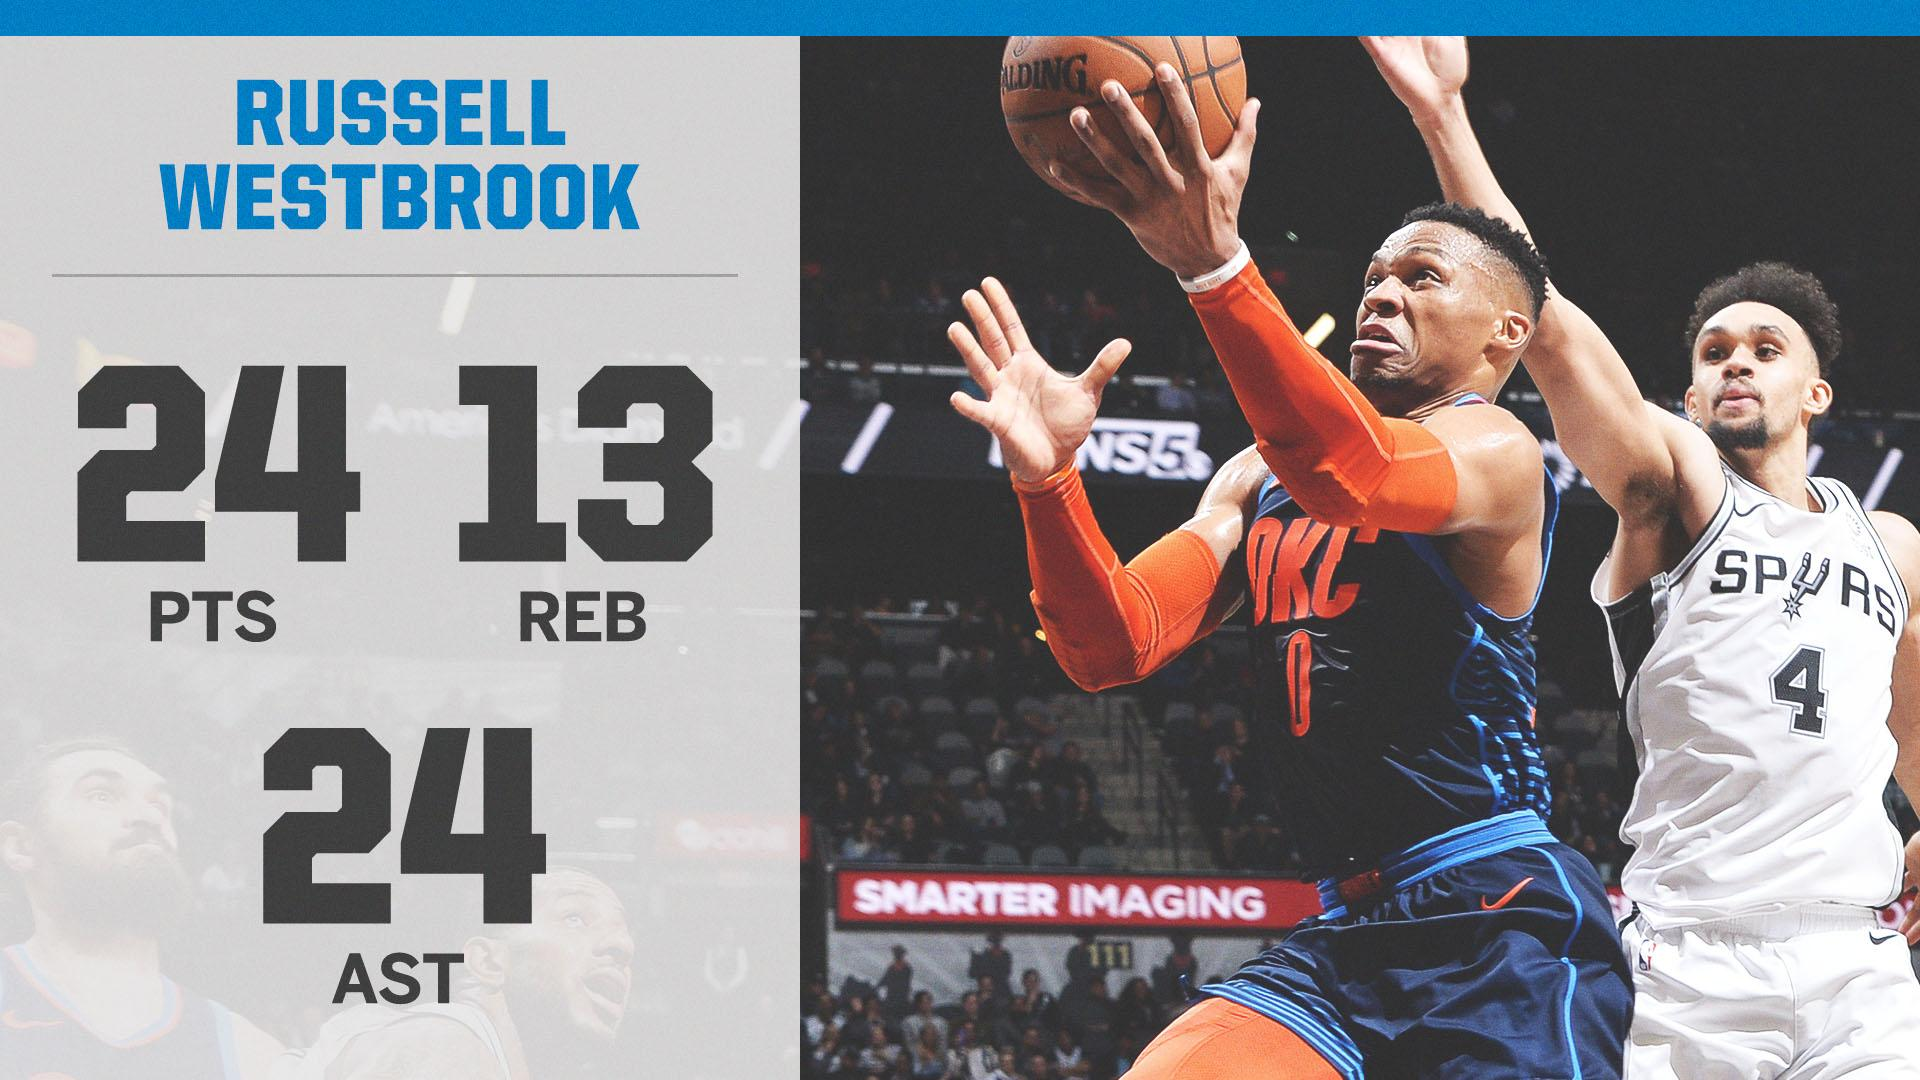 Russ got his 4th career game with 20+ pts and 20+ ast.  No other active player has more than 1 �� https://t.co/H158Rn0m6Q